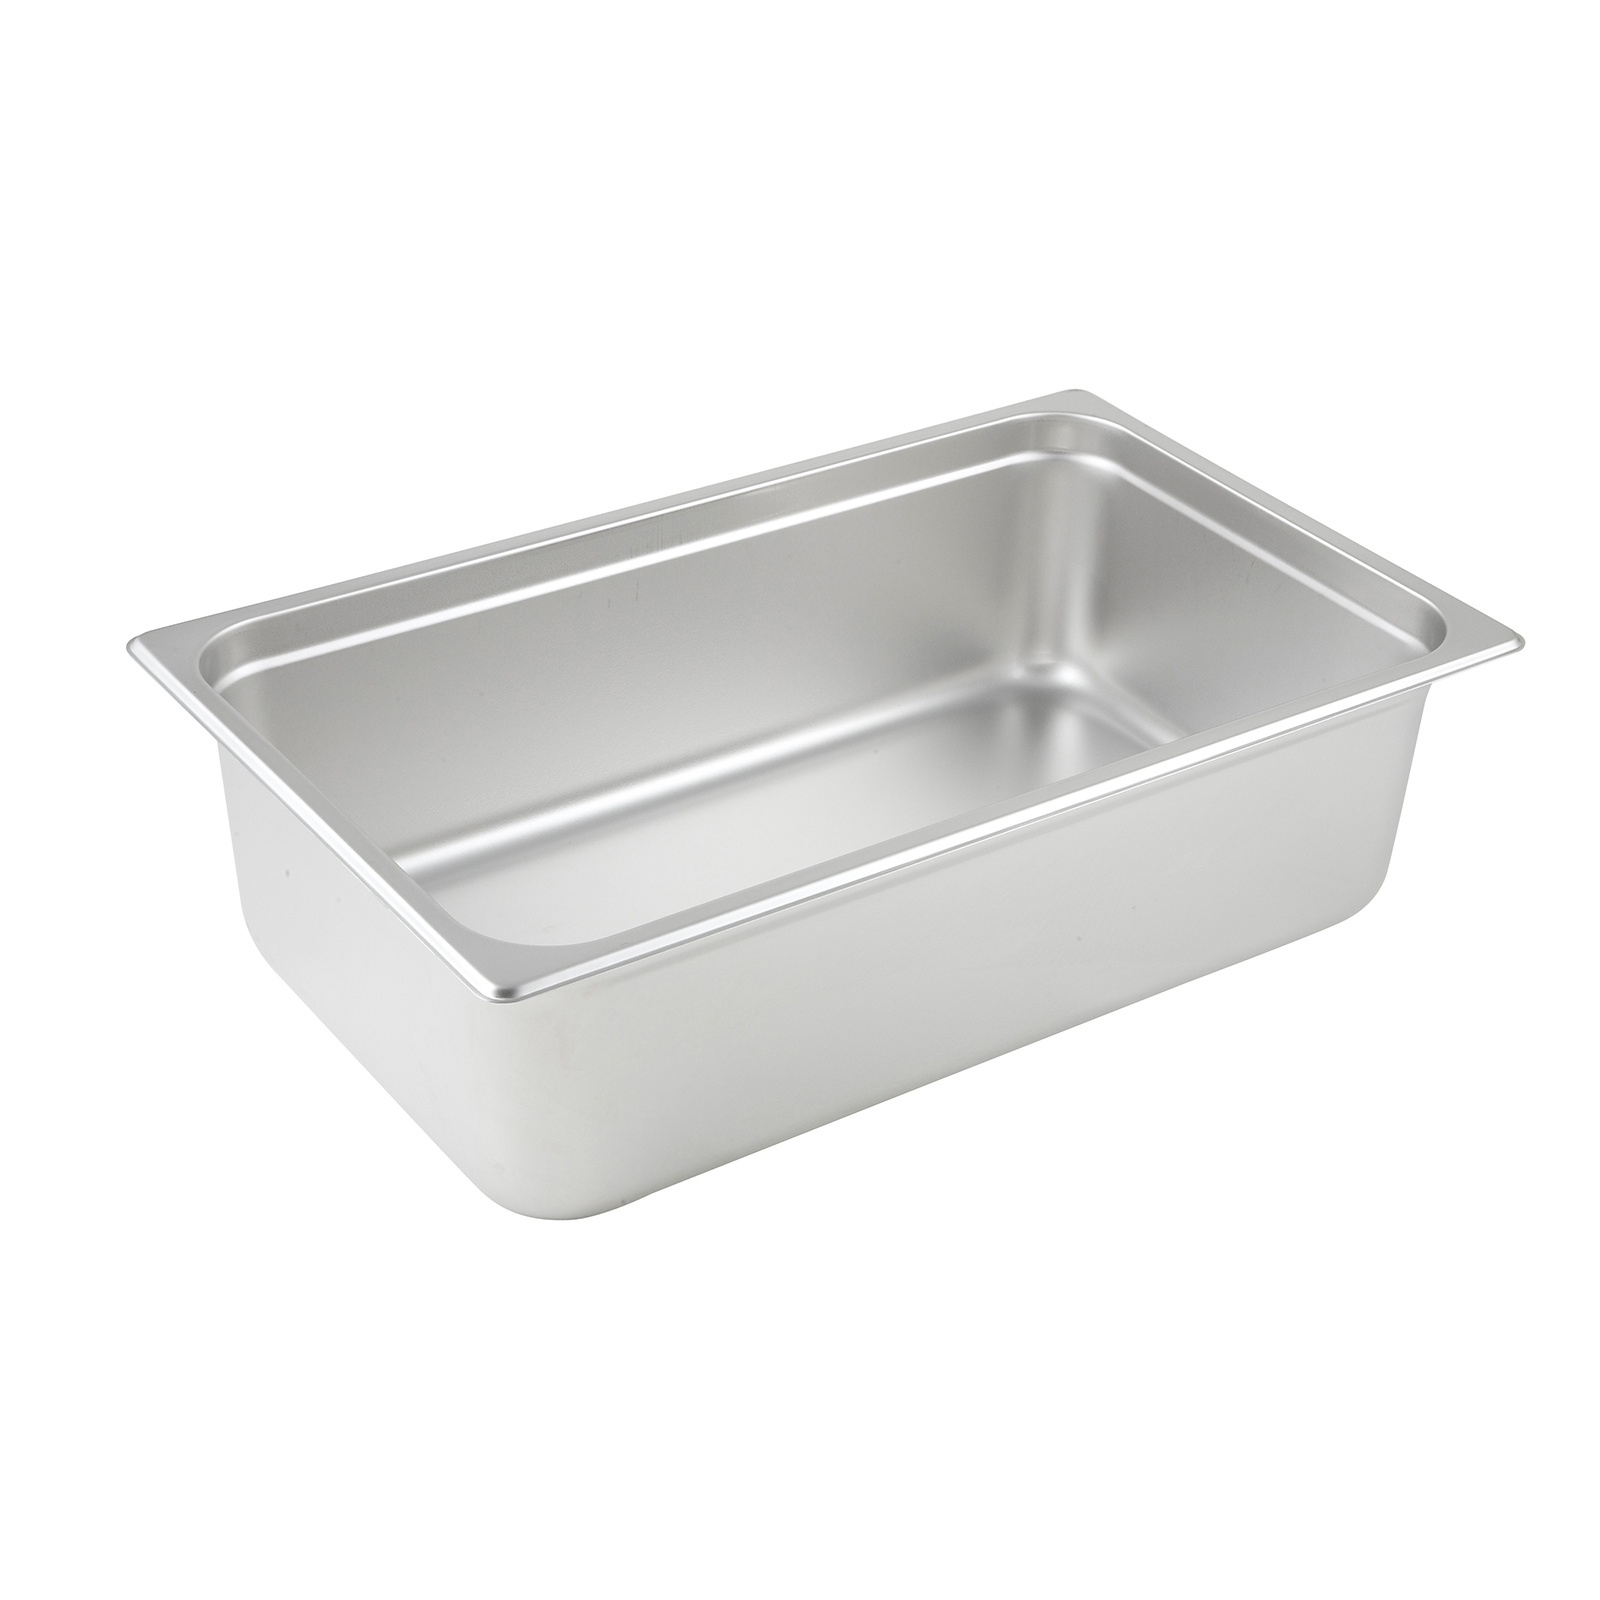 Winco SPJP-106 steam table pan, stainless steel